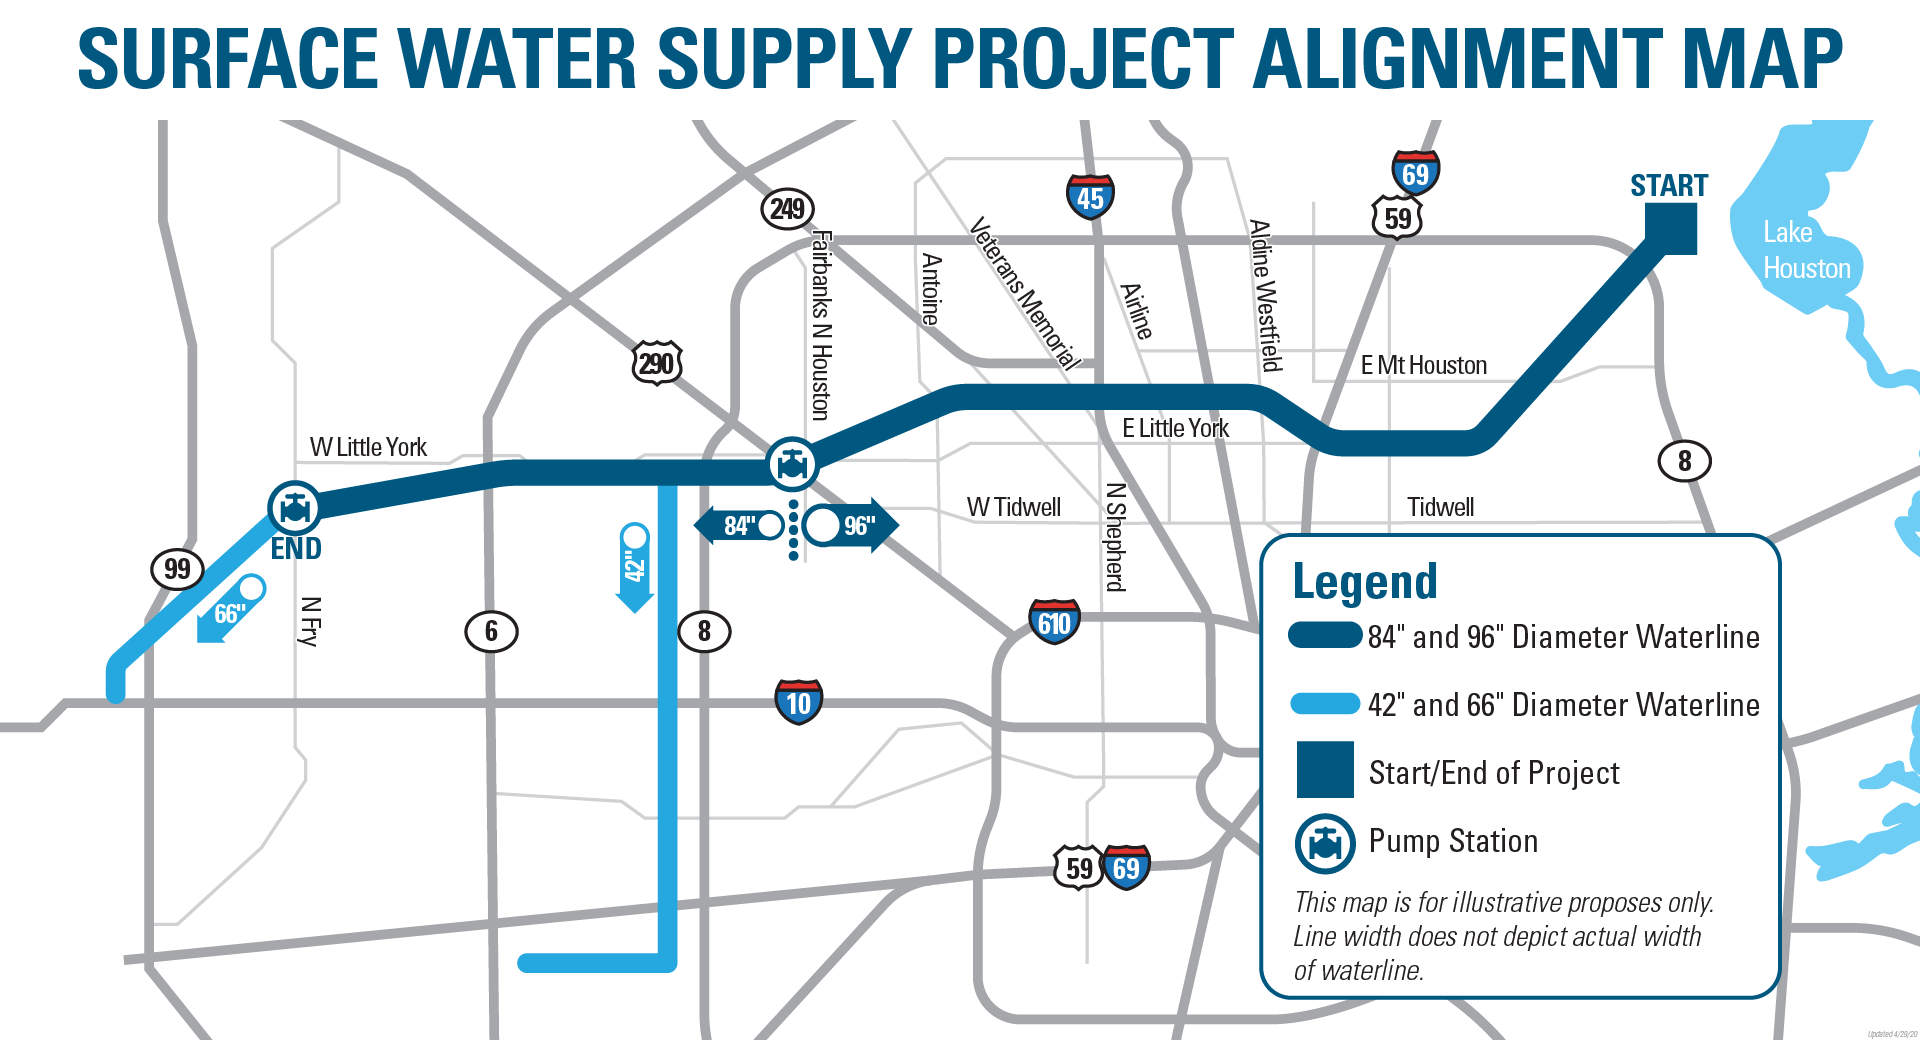 Map of the Surface Water Supply Project as of 12/23/19